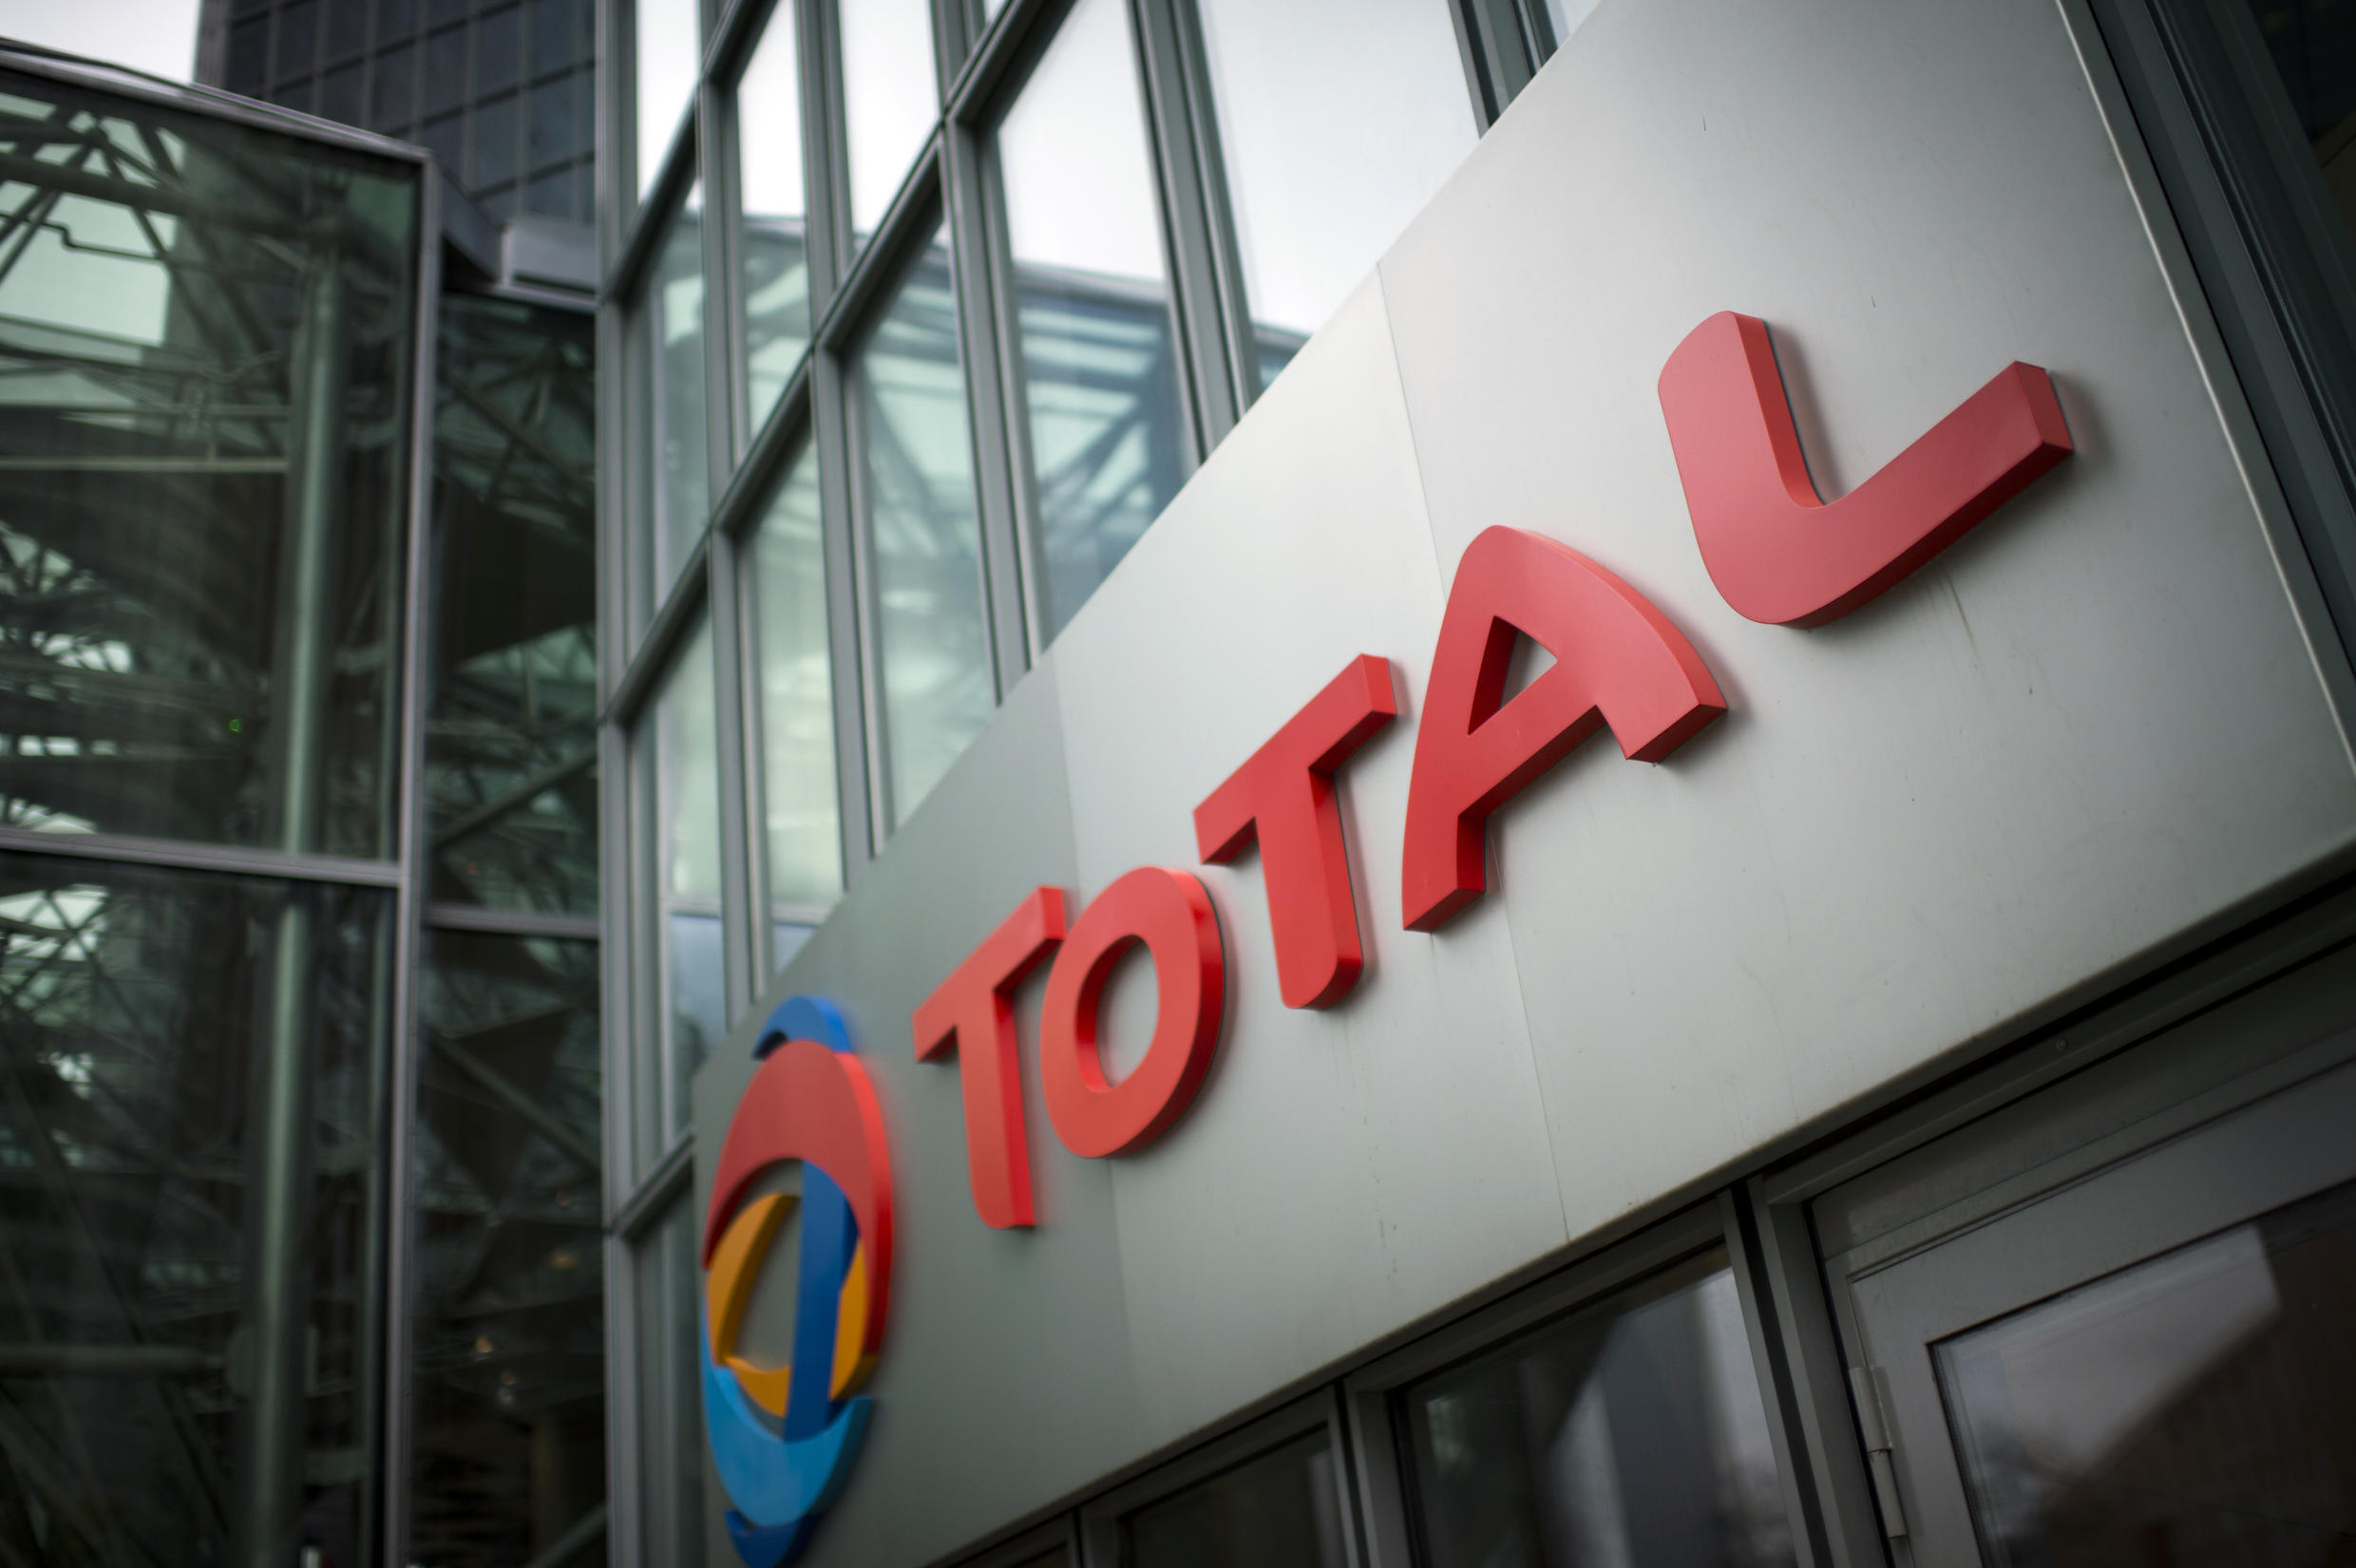 Total and its partners planned to invest $20 billion in the project, the largest amount ever for a project in Africa